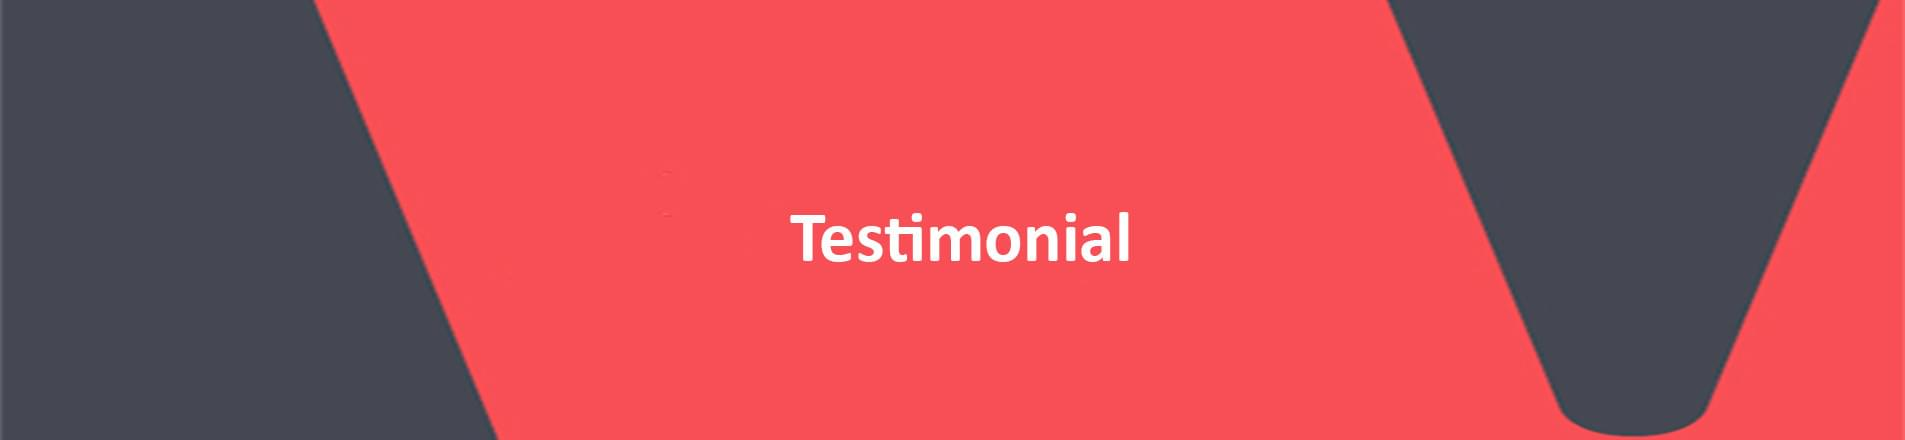 The word testimonial in white on a red VERCIDA branded background